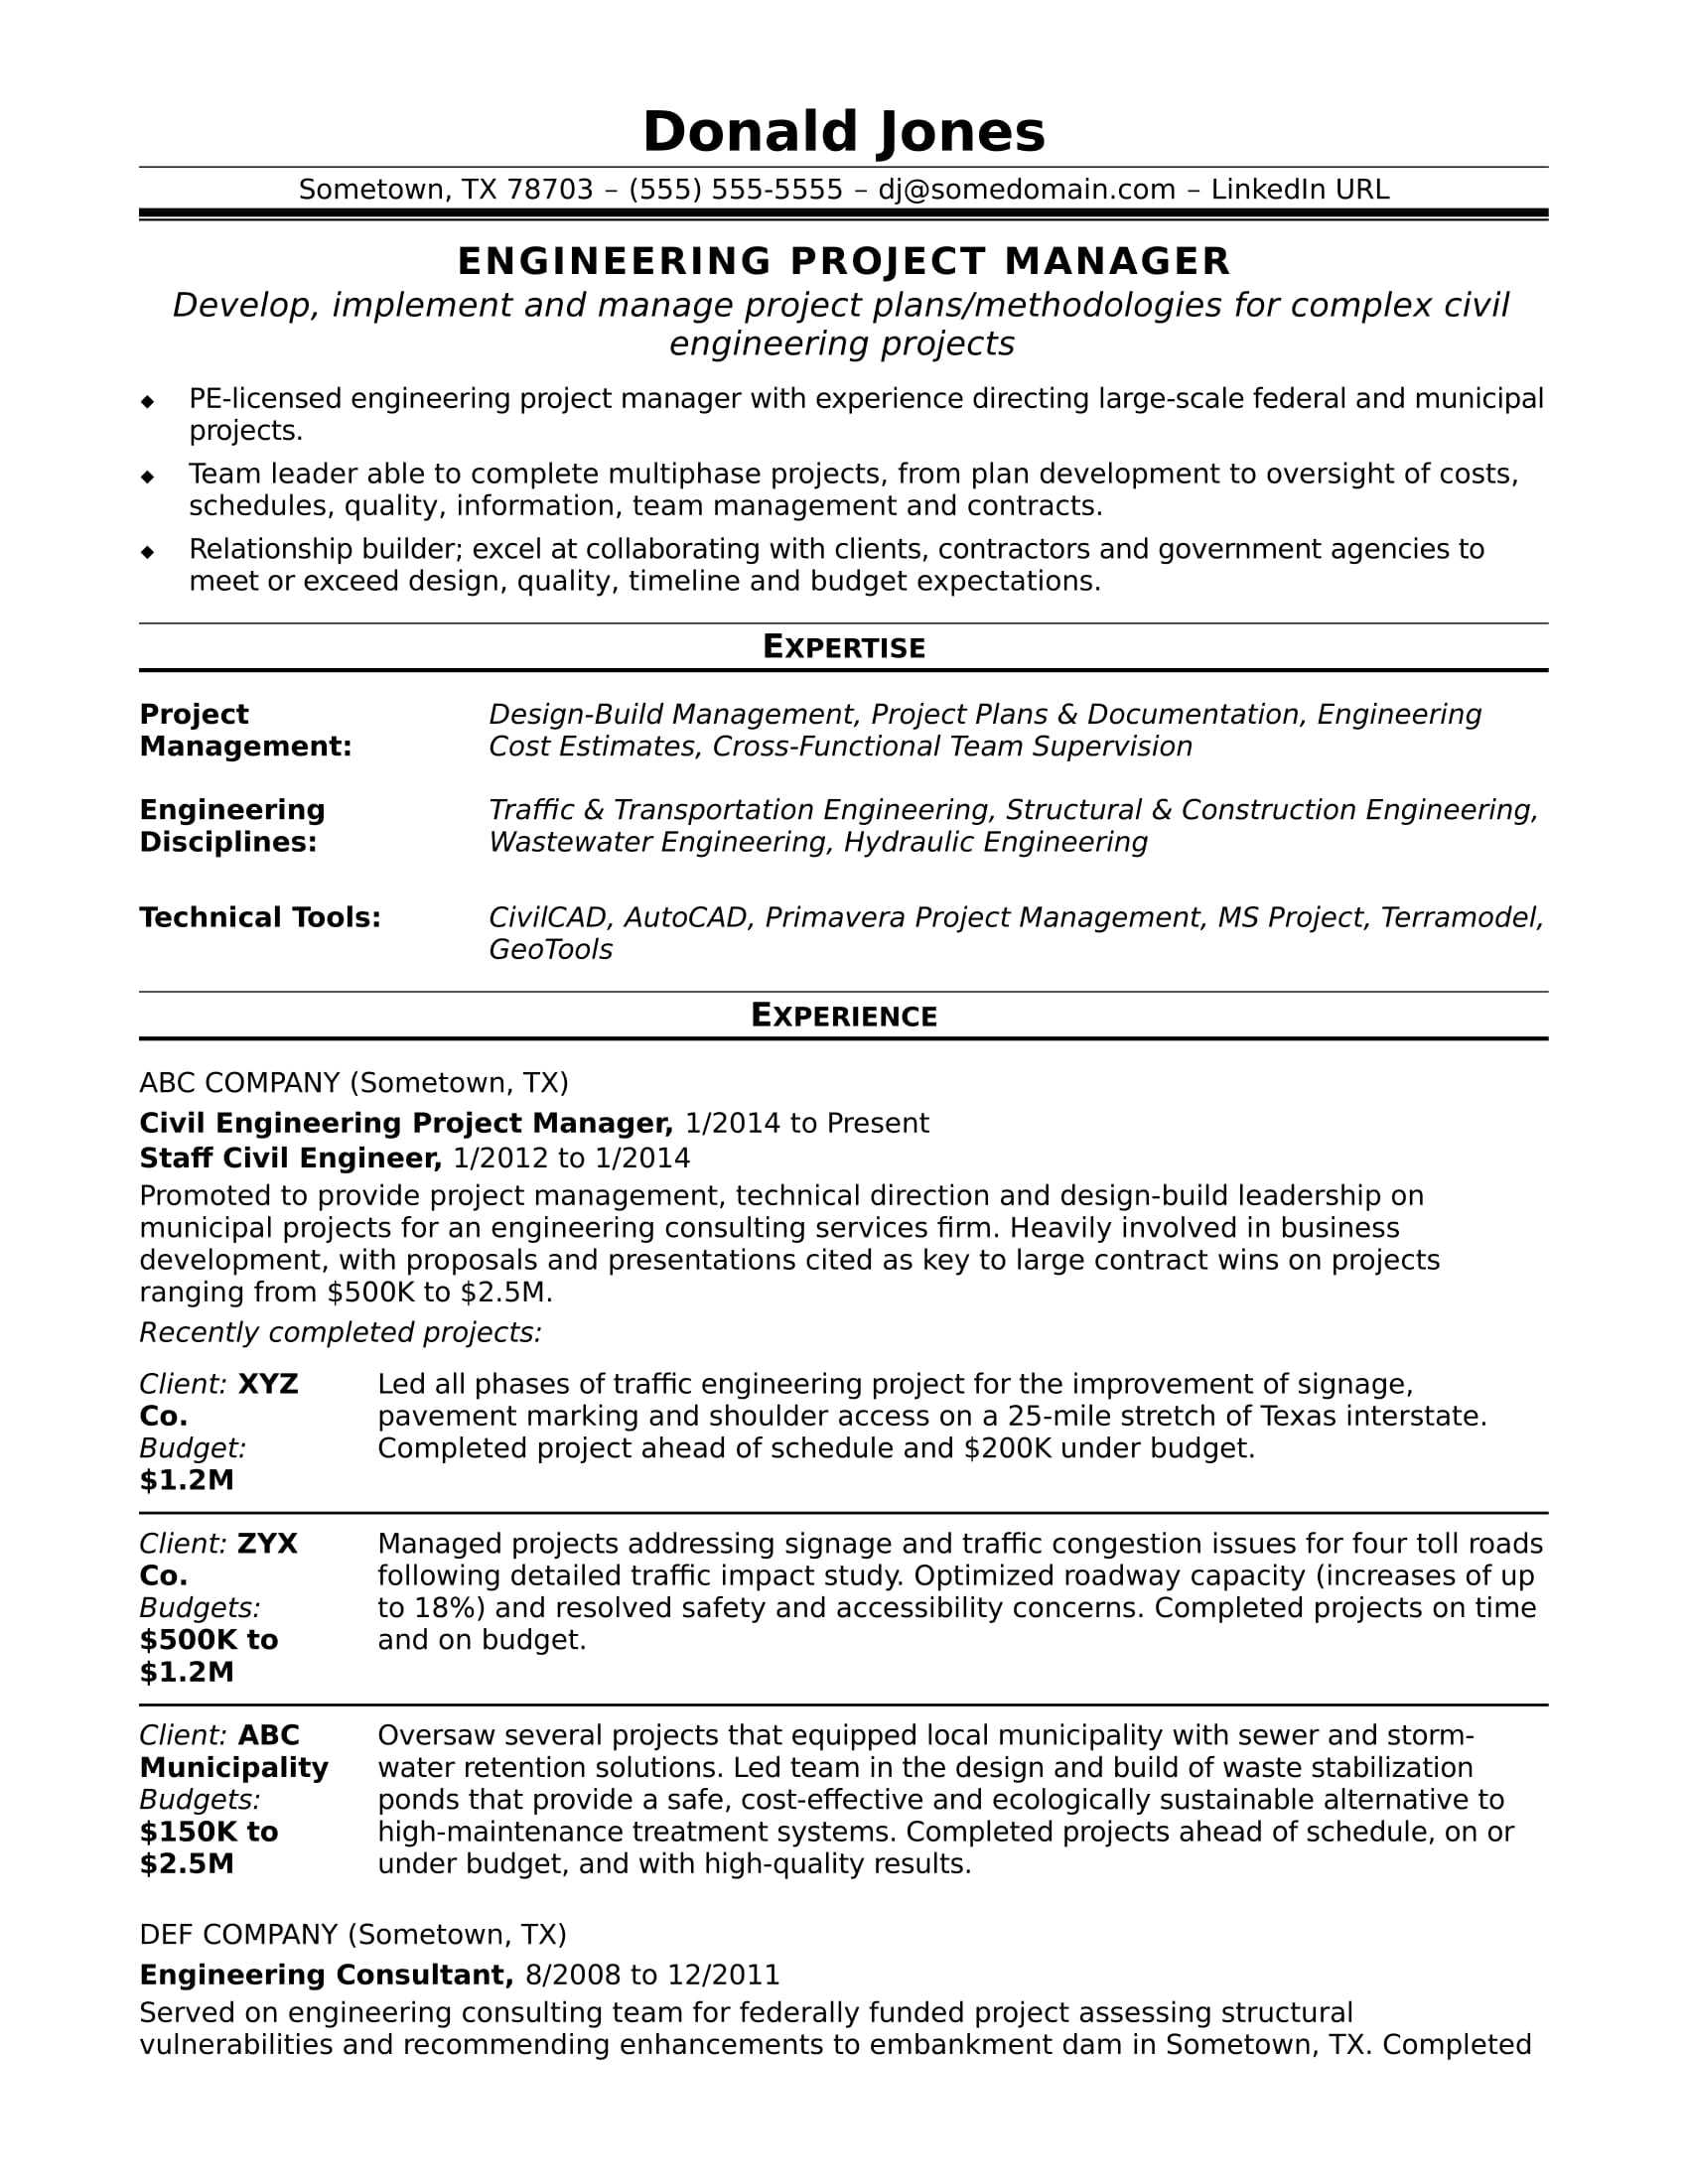 Sample resume for a midlevel engineering project manager monster sample resume for a midlevel engineering project manager yelopaper Image collections